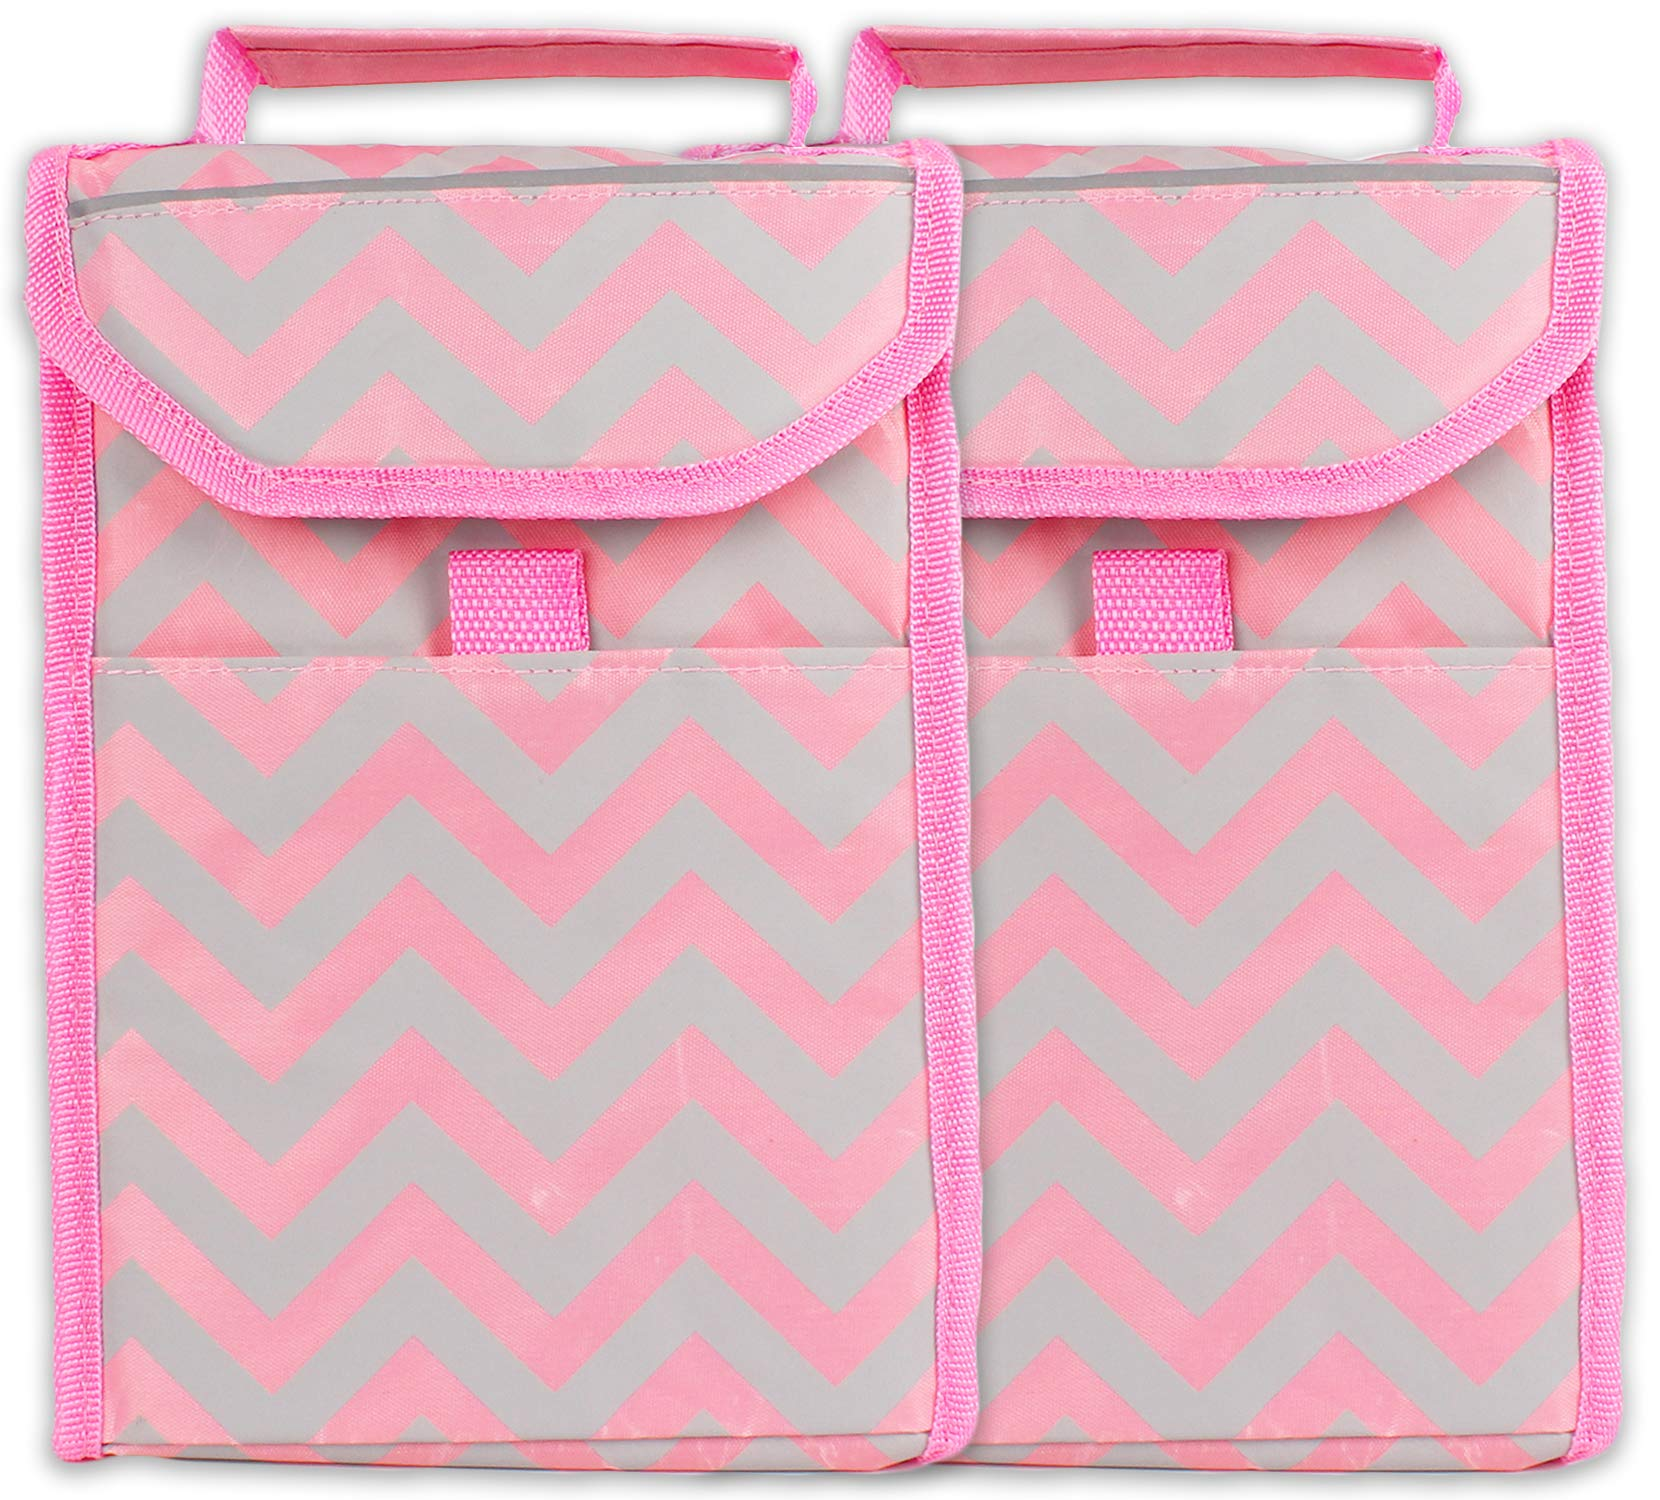 bogo Brands Soft-Sided Insulated Lunch Kit Cooler Tote Bag Pink Chevron Striped On-The-Go Loncheras Lunchbag by (2 Pack)